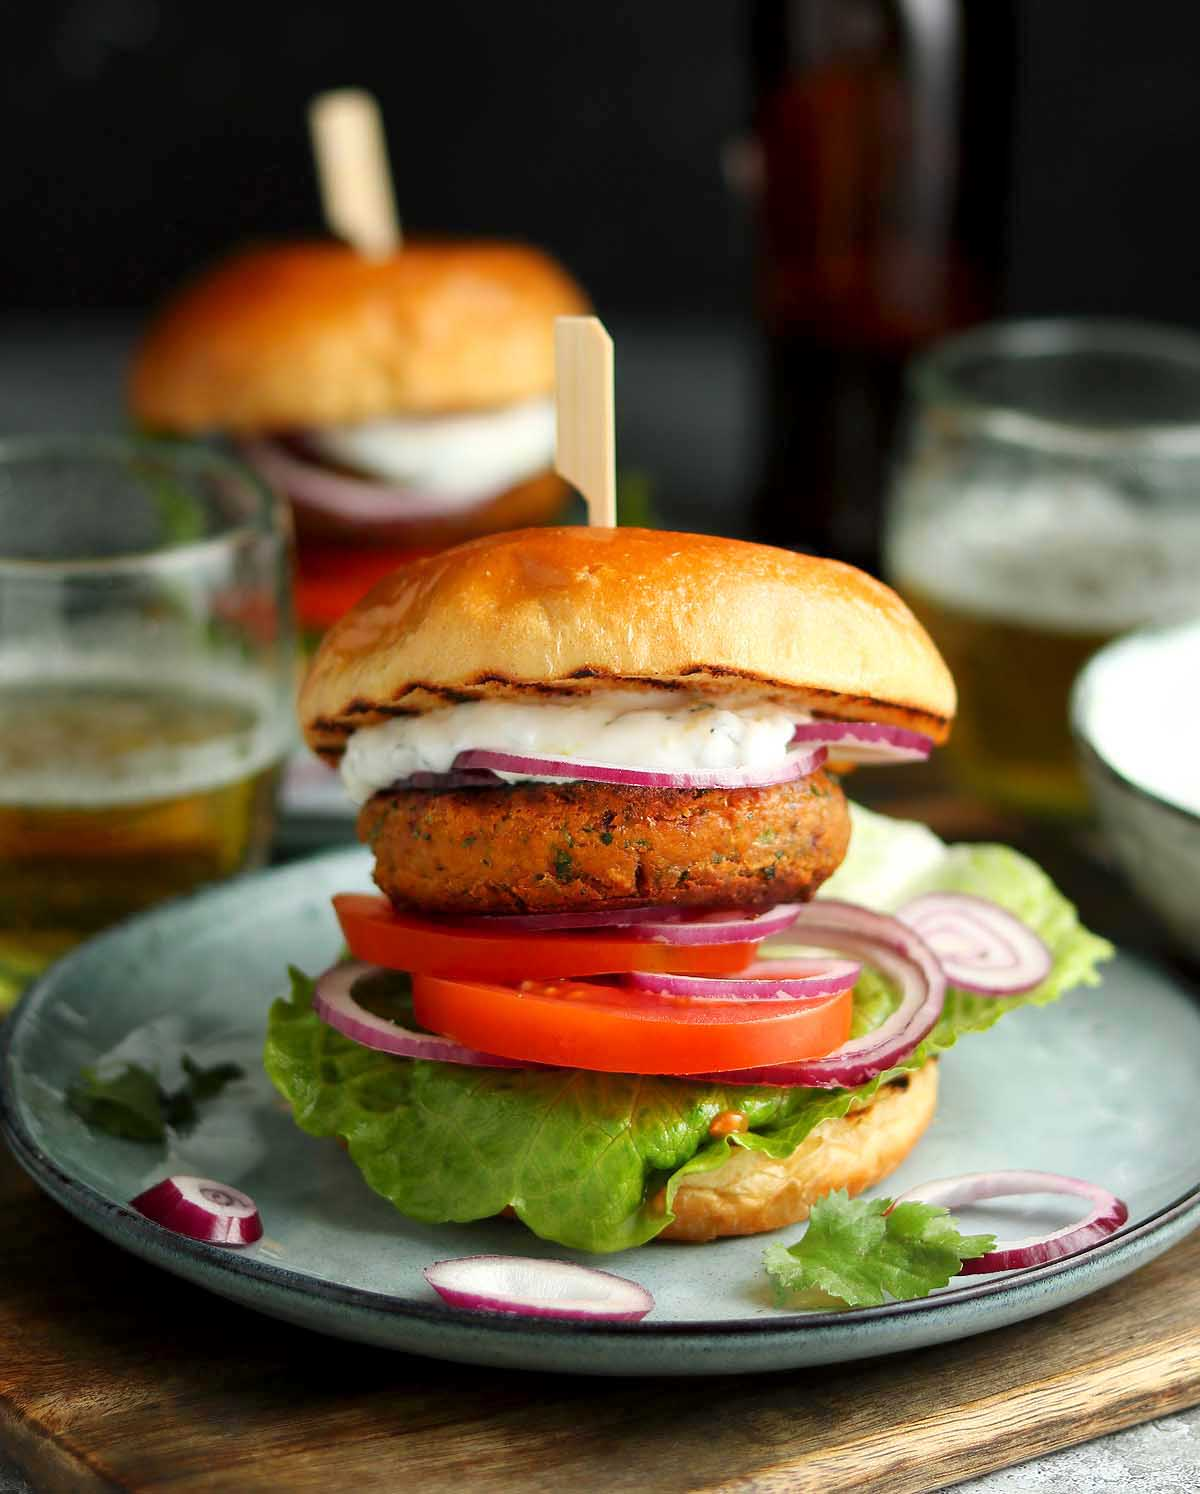 Burgers made with chickpeas and chopped red onion, served in a bun with lettuce, tomato and minty yoghurt sauce.